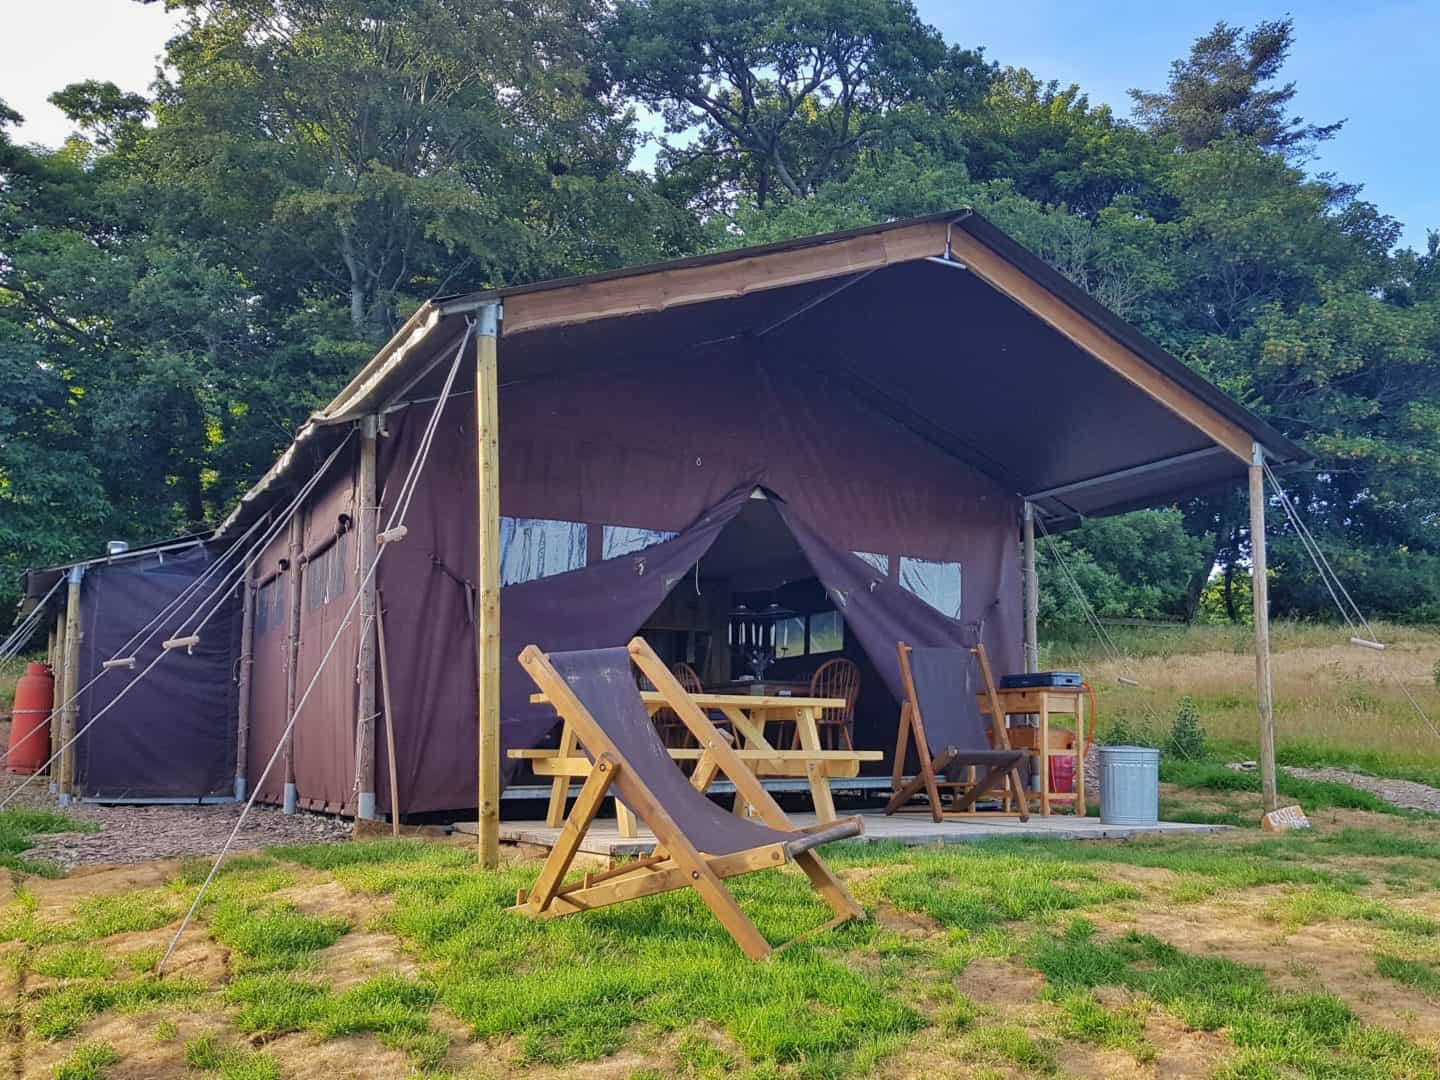 Feather Down glamping tent